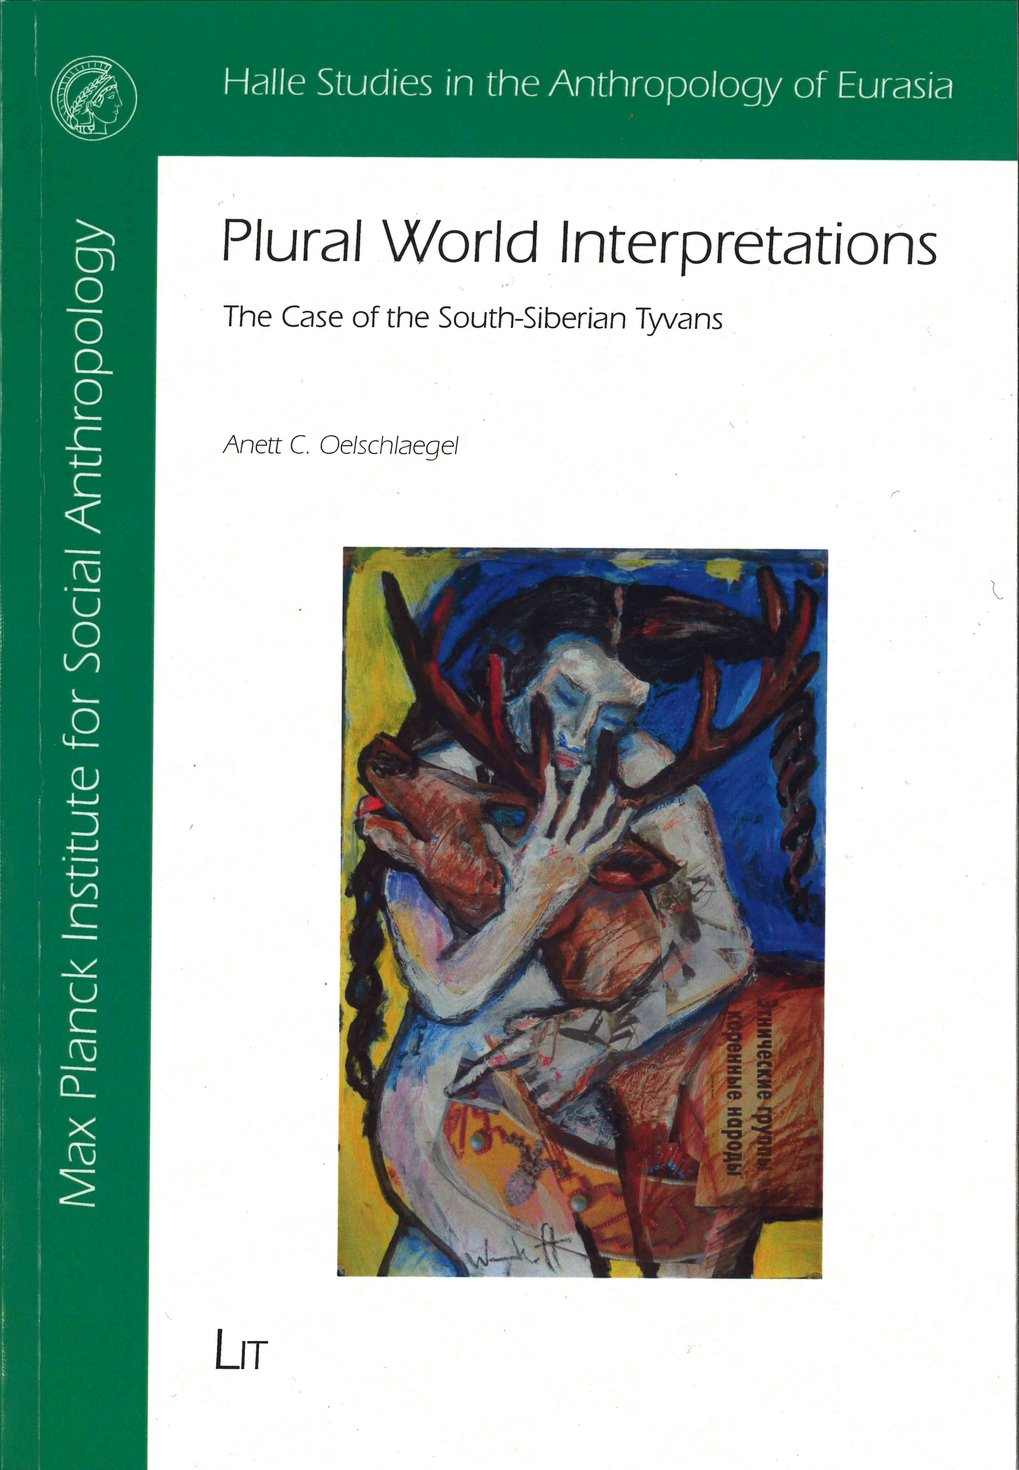 Plural World Interpretations. The case of the South-Siberian Tyvans